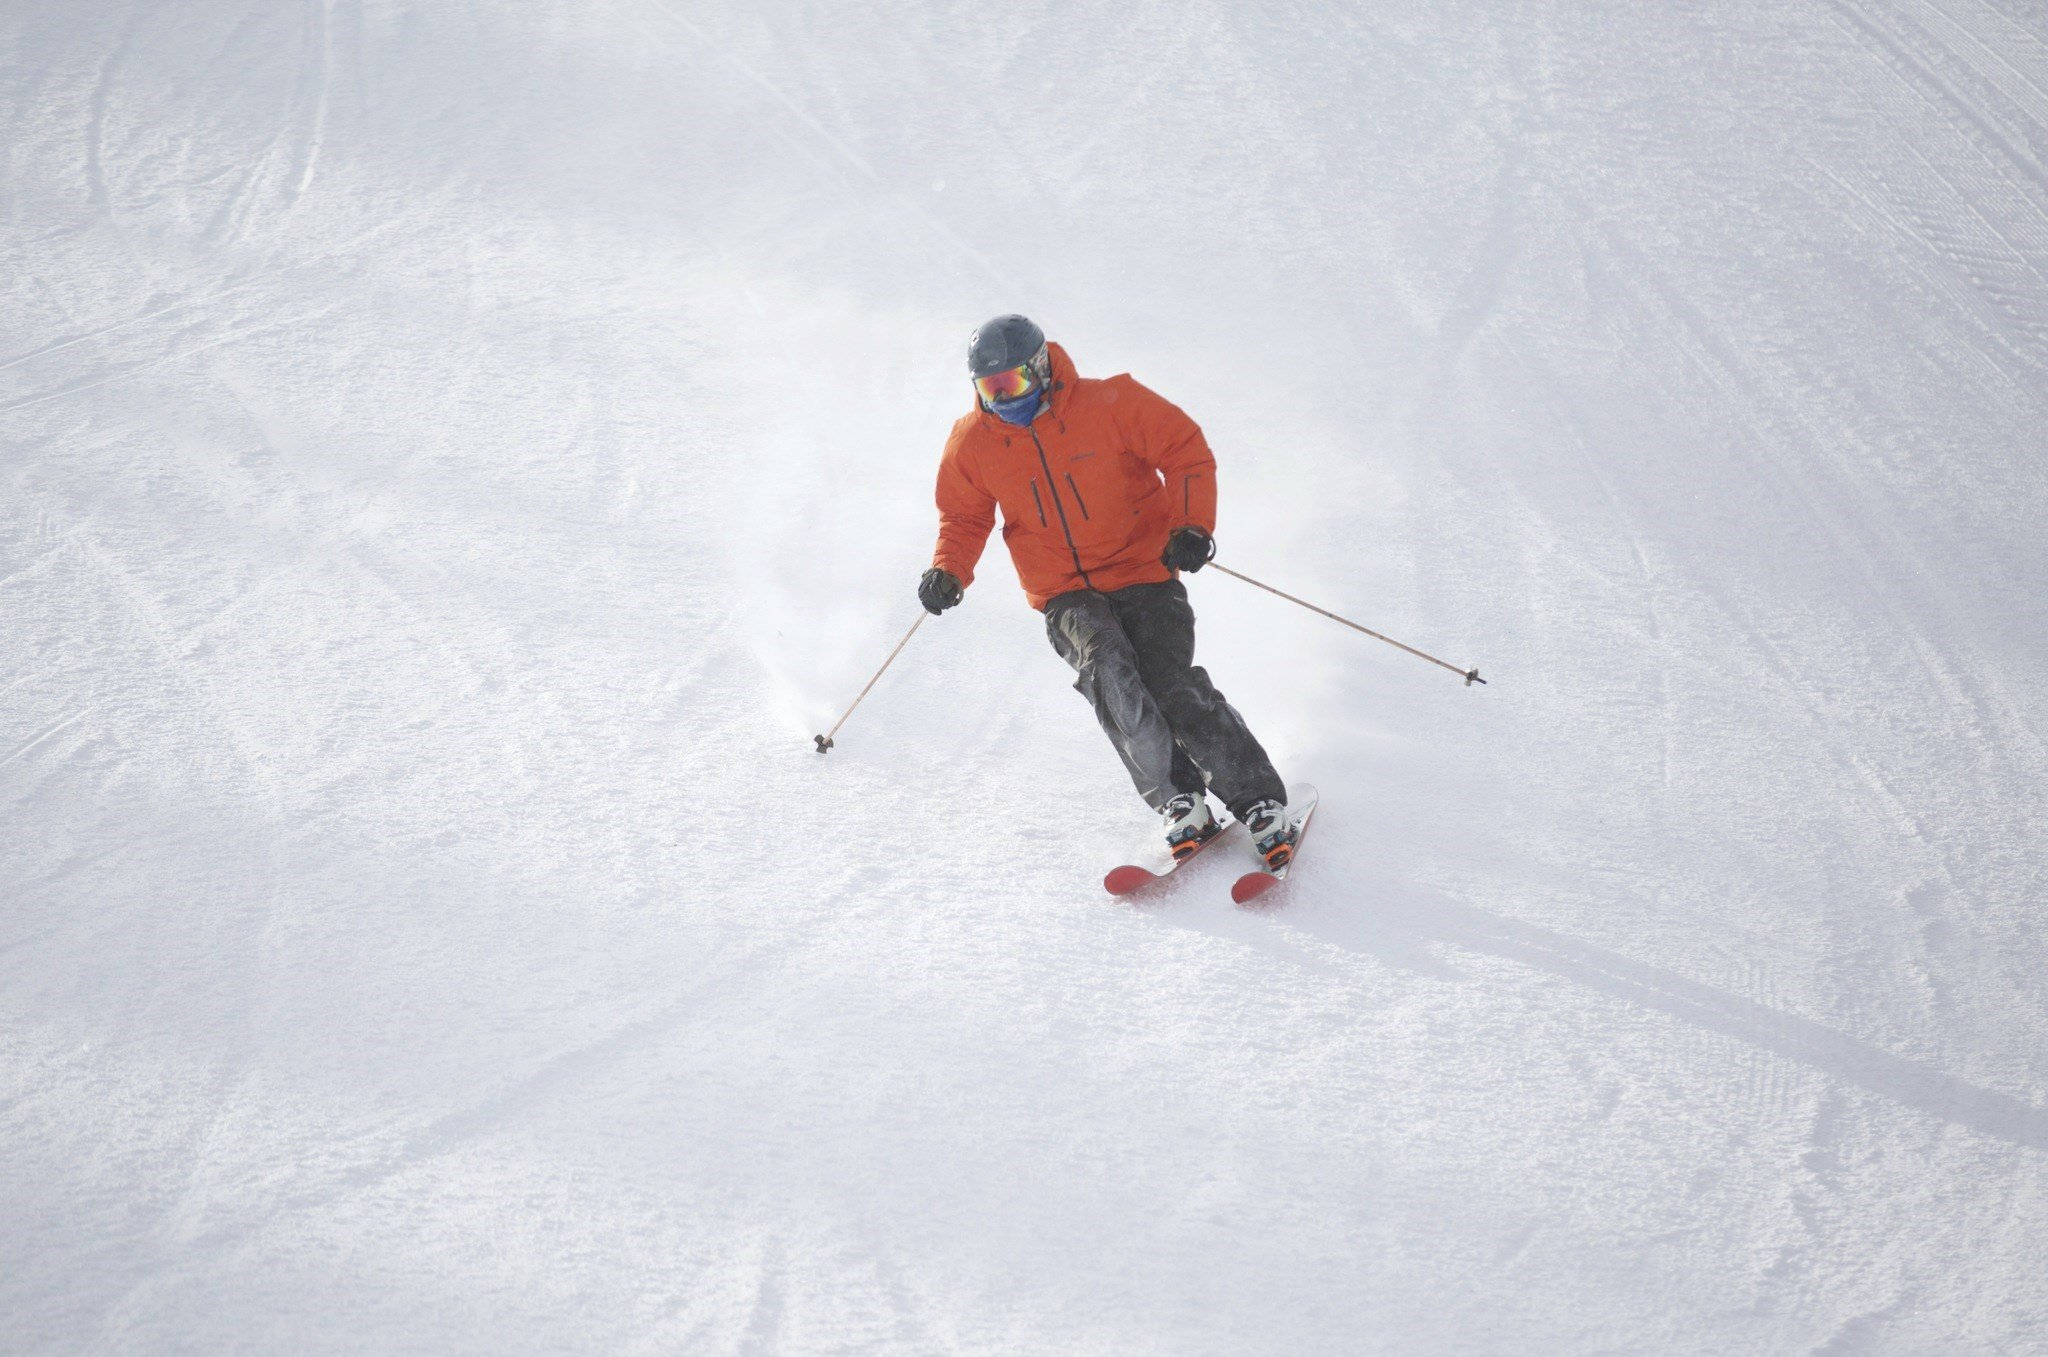 With new snow, more skiing has opened in Keyston